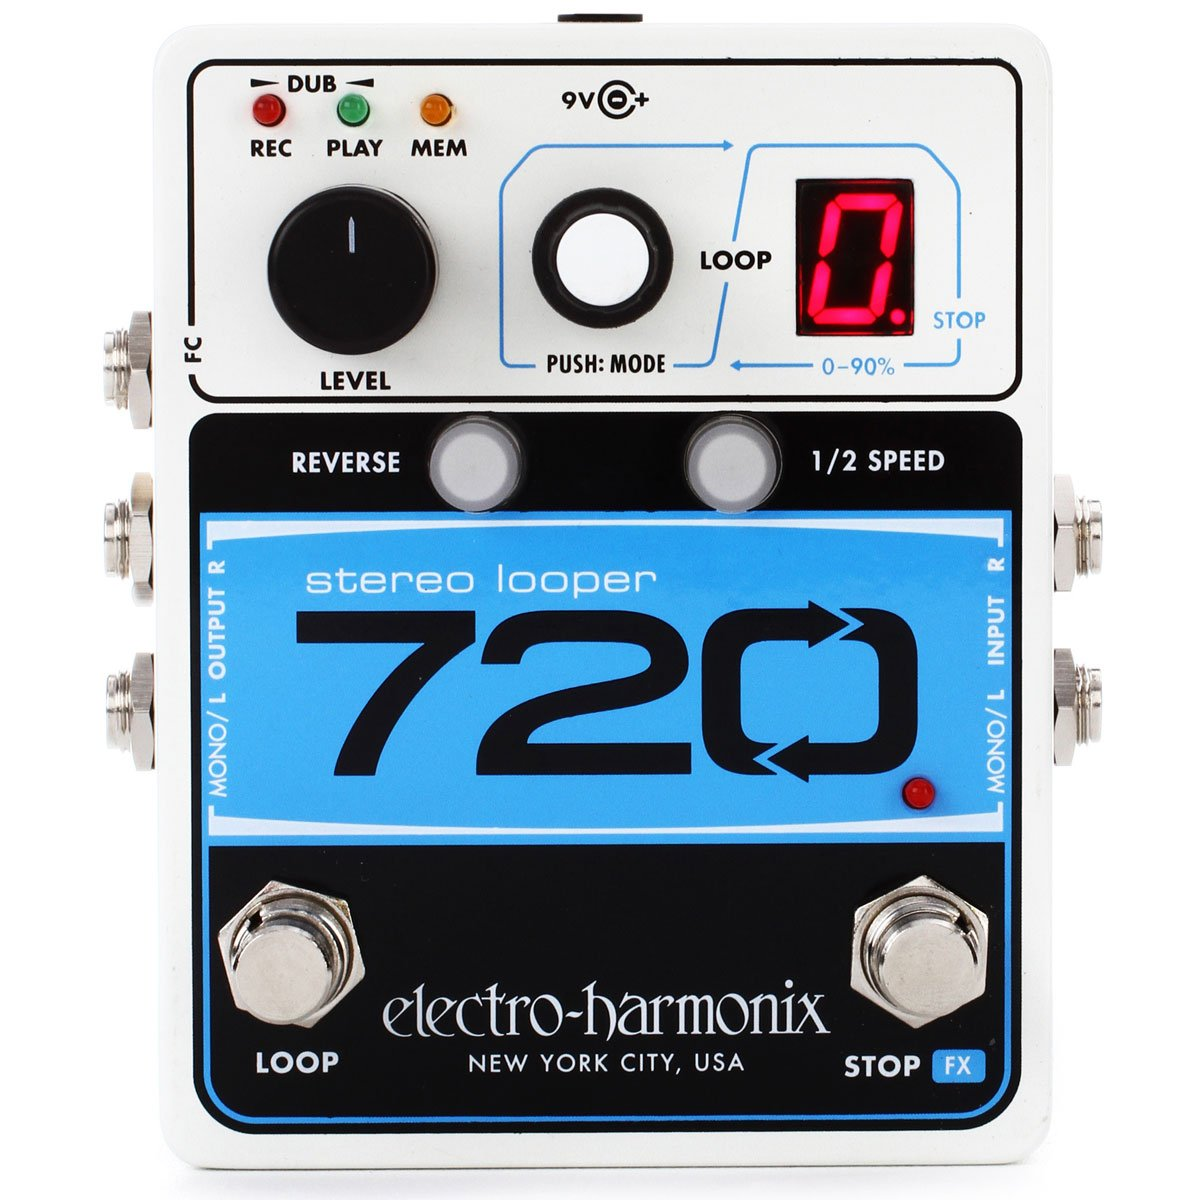 Electro Harmonix - 720 Stereo Looper (PSU Included) | Lucky Fret Music Co.